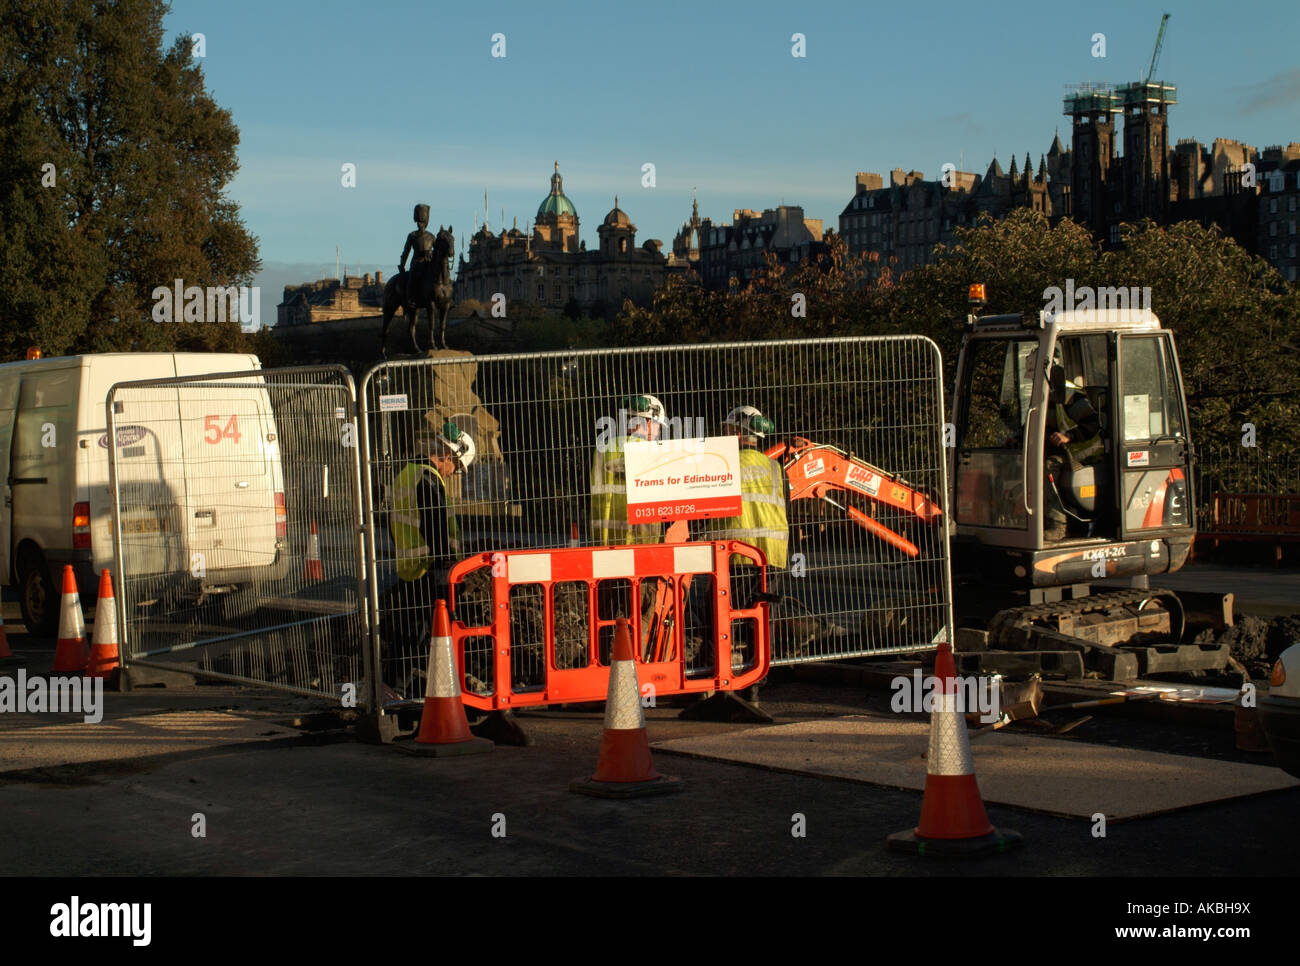 Digging up Princes Street as part of the initial work for the Edinburgh tram project. - Stock Image